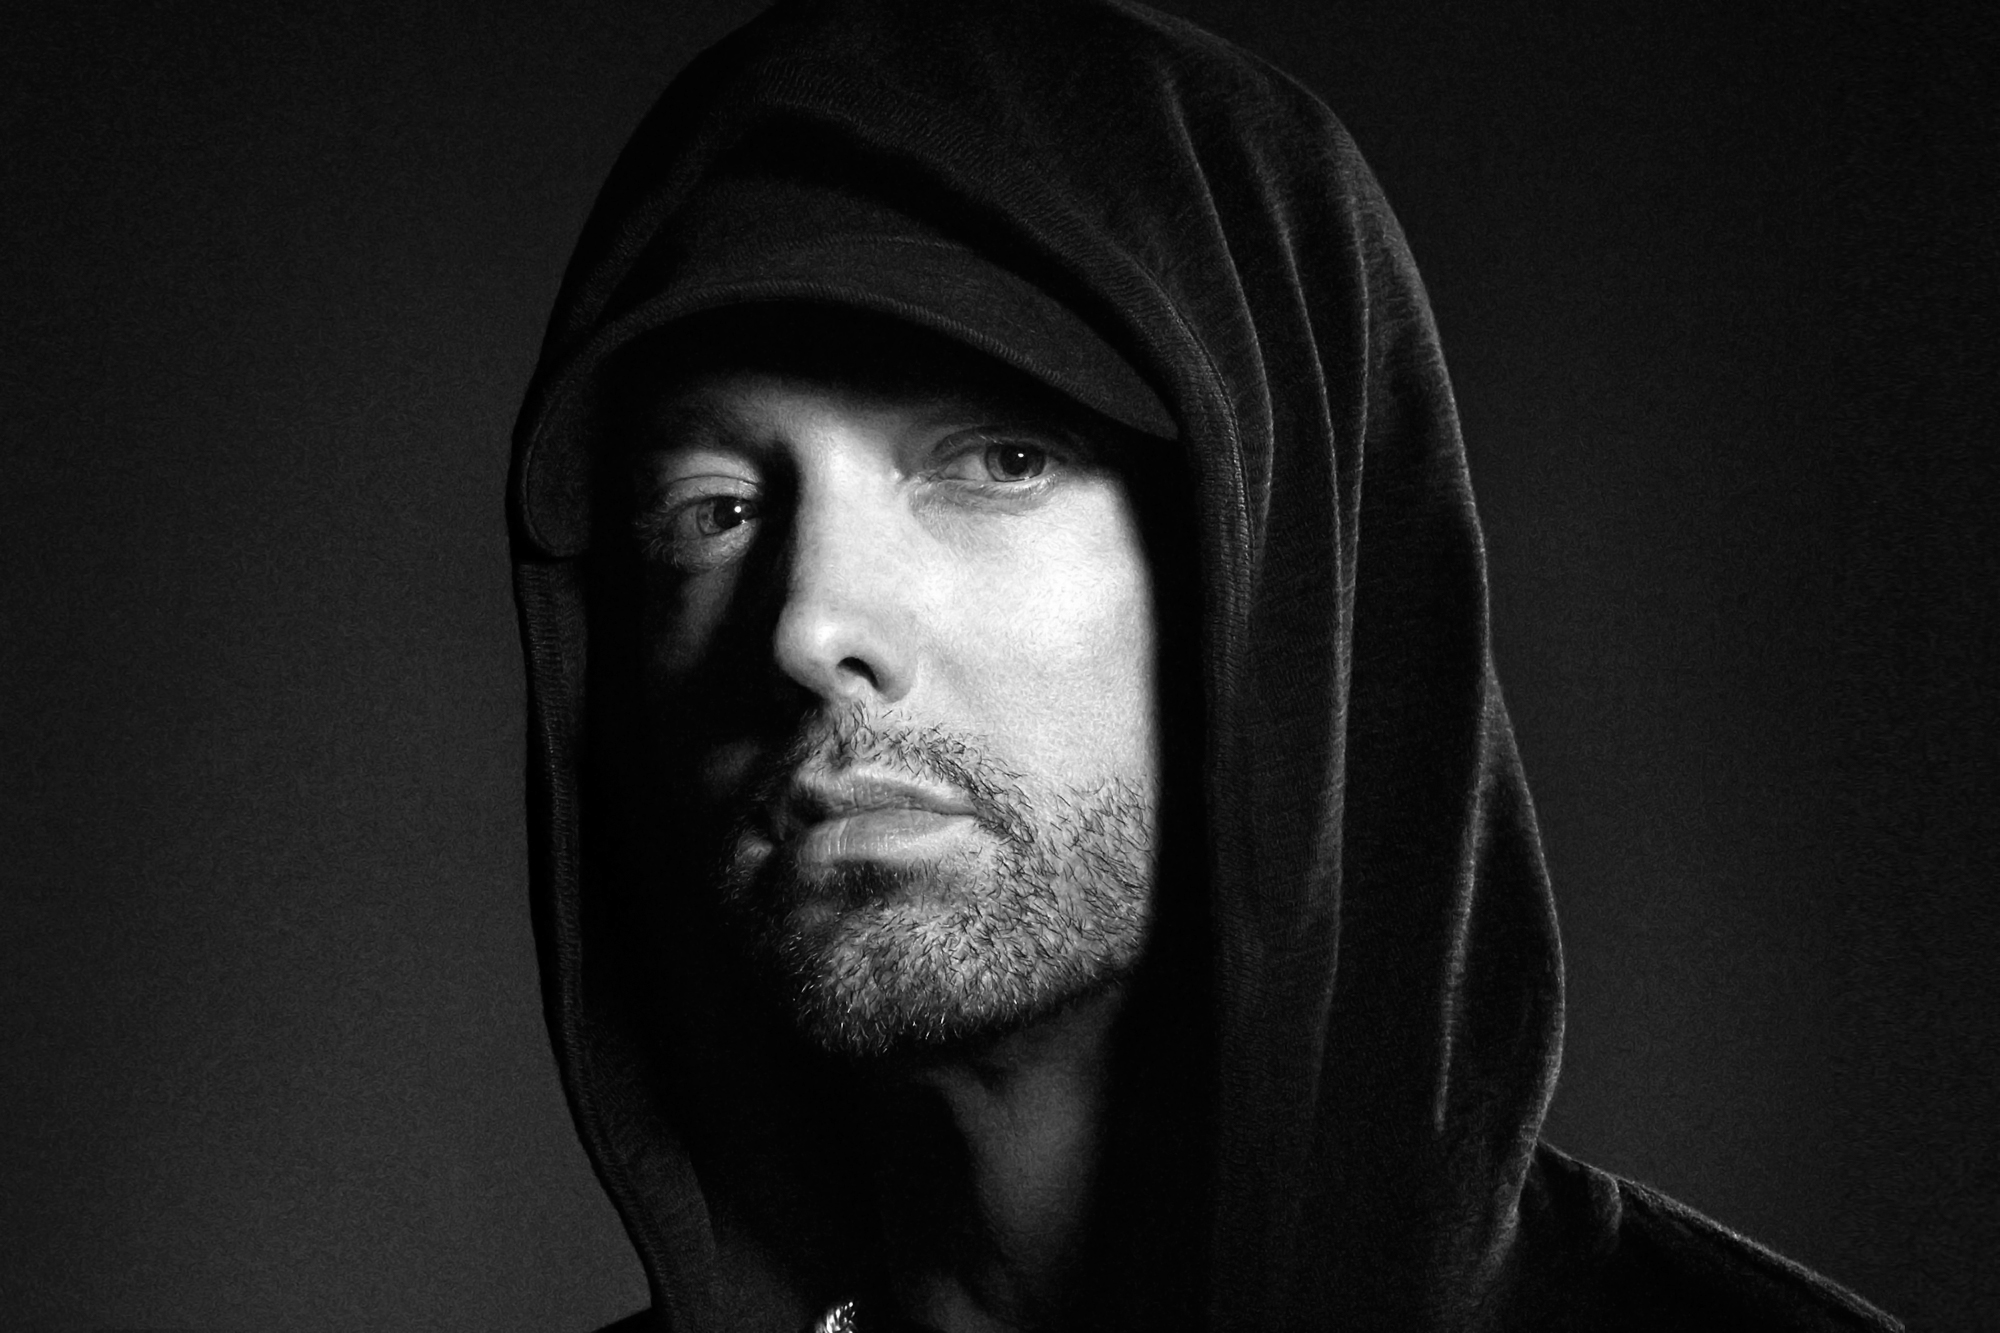 Eminem, 'Music to Be Murdered By': Album Review - Rolling Stone